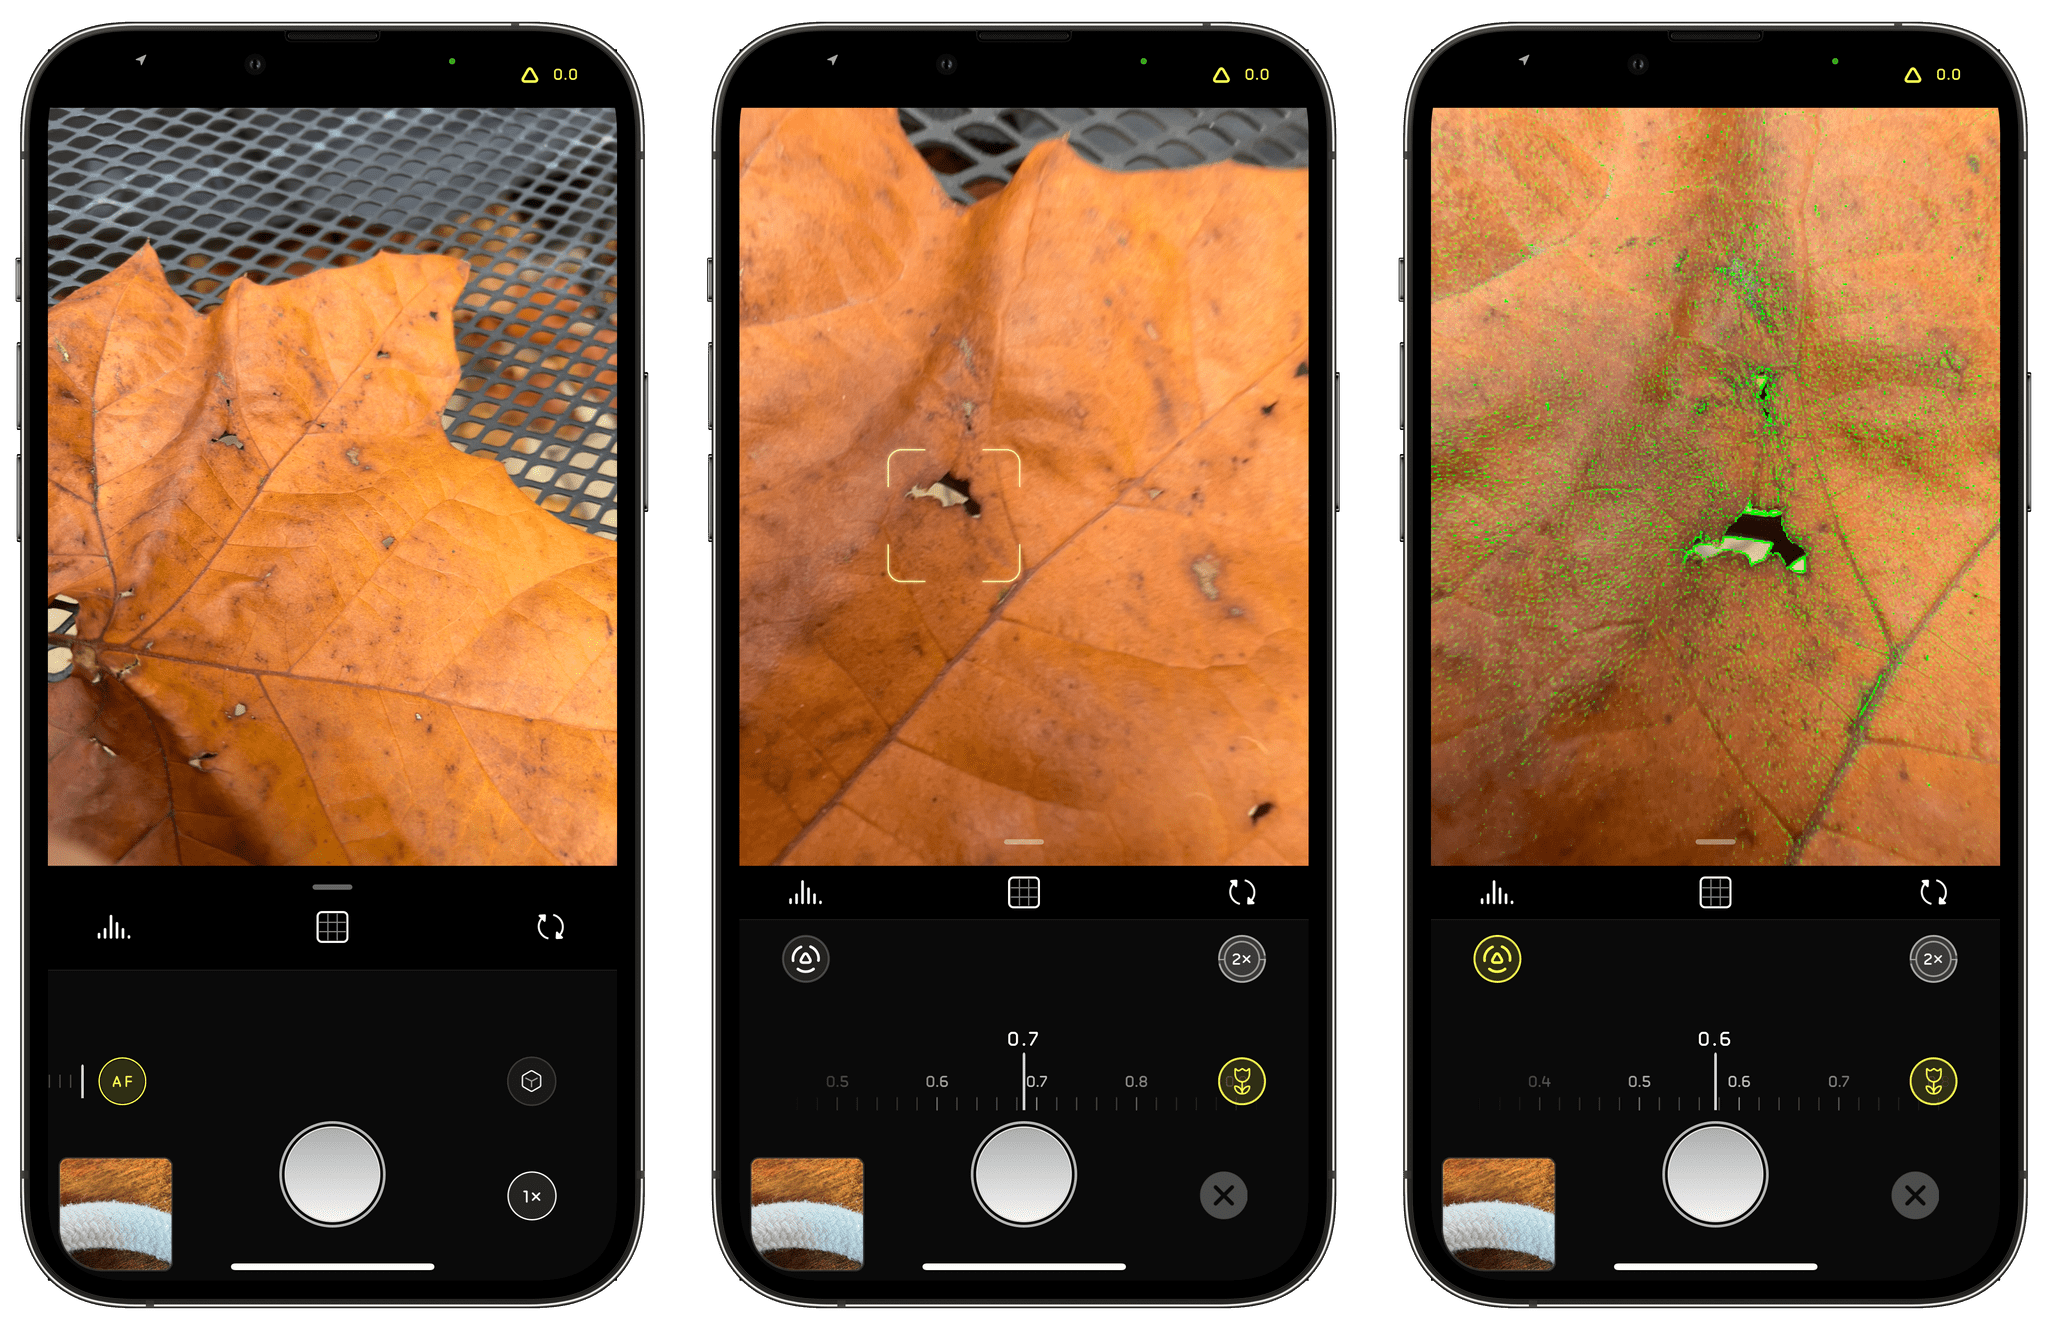 Switching to Macro Mode and dialing in precise focus is simple with Halide 2.5.